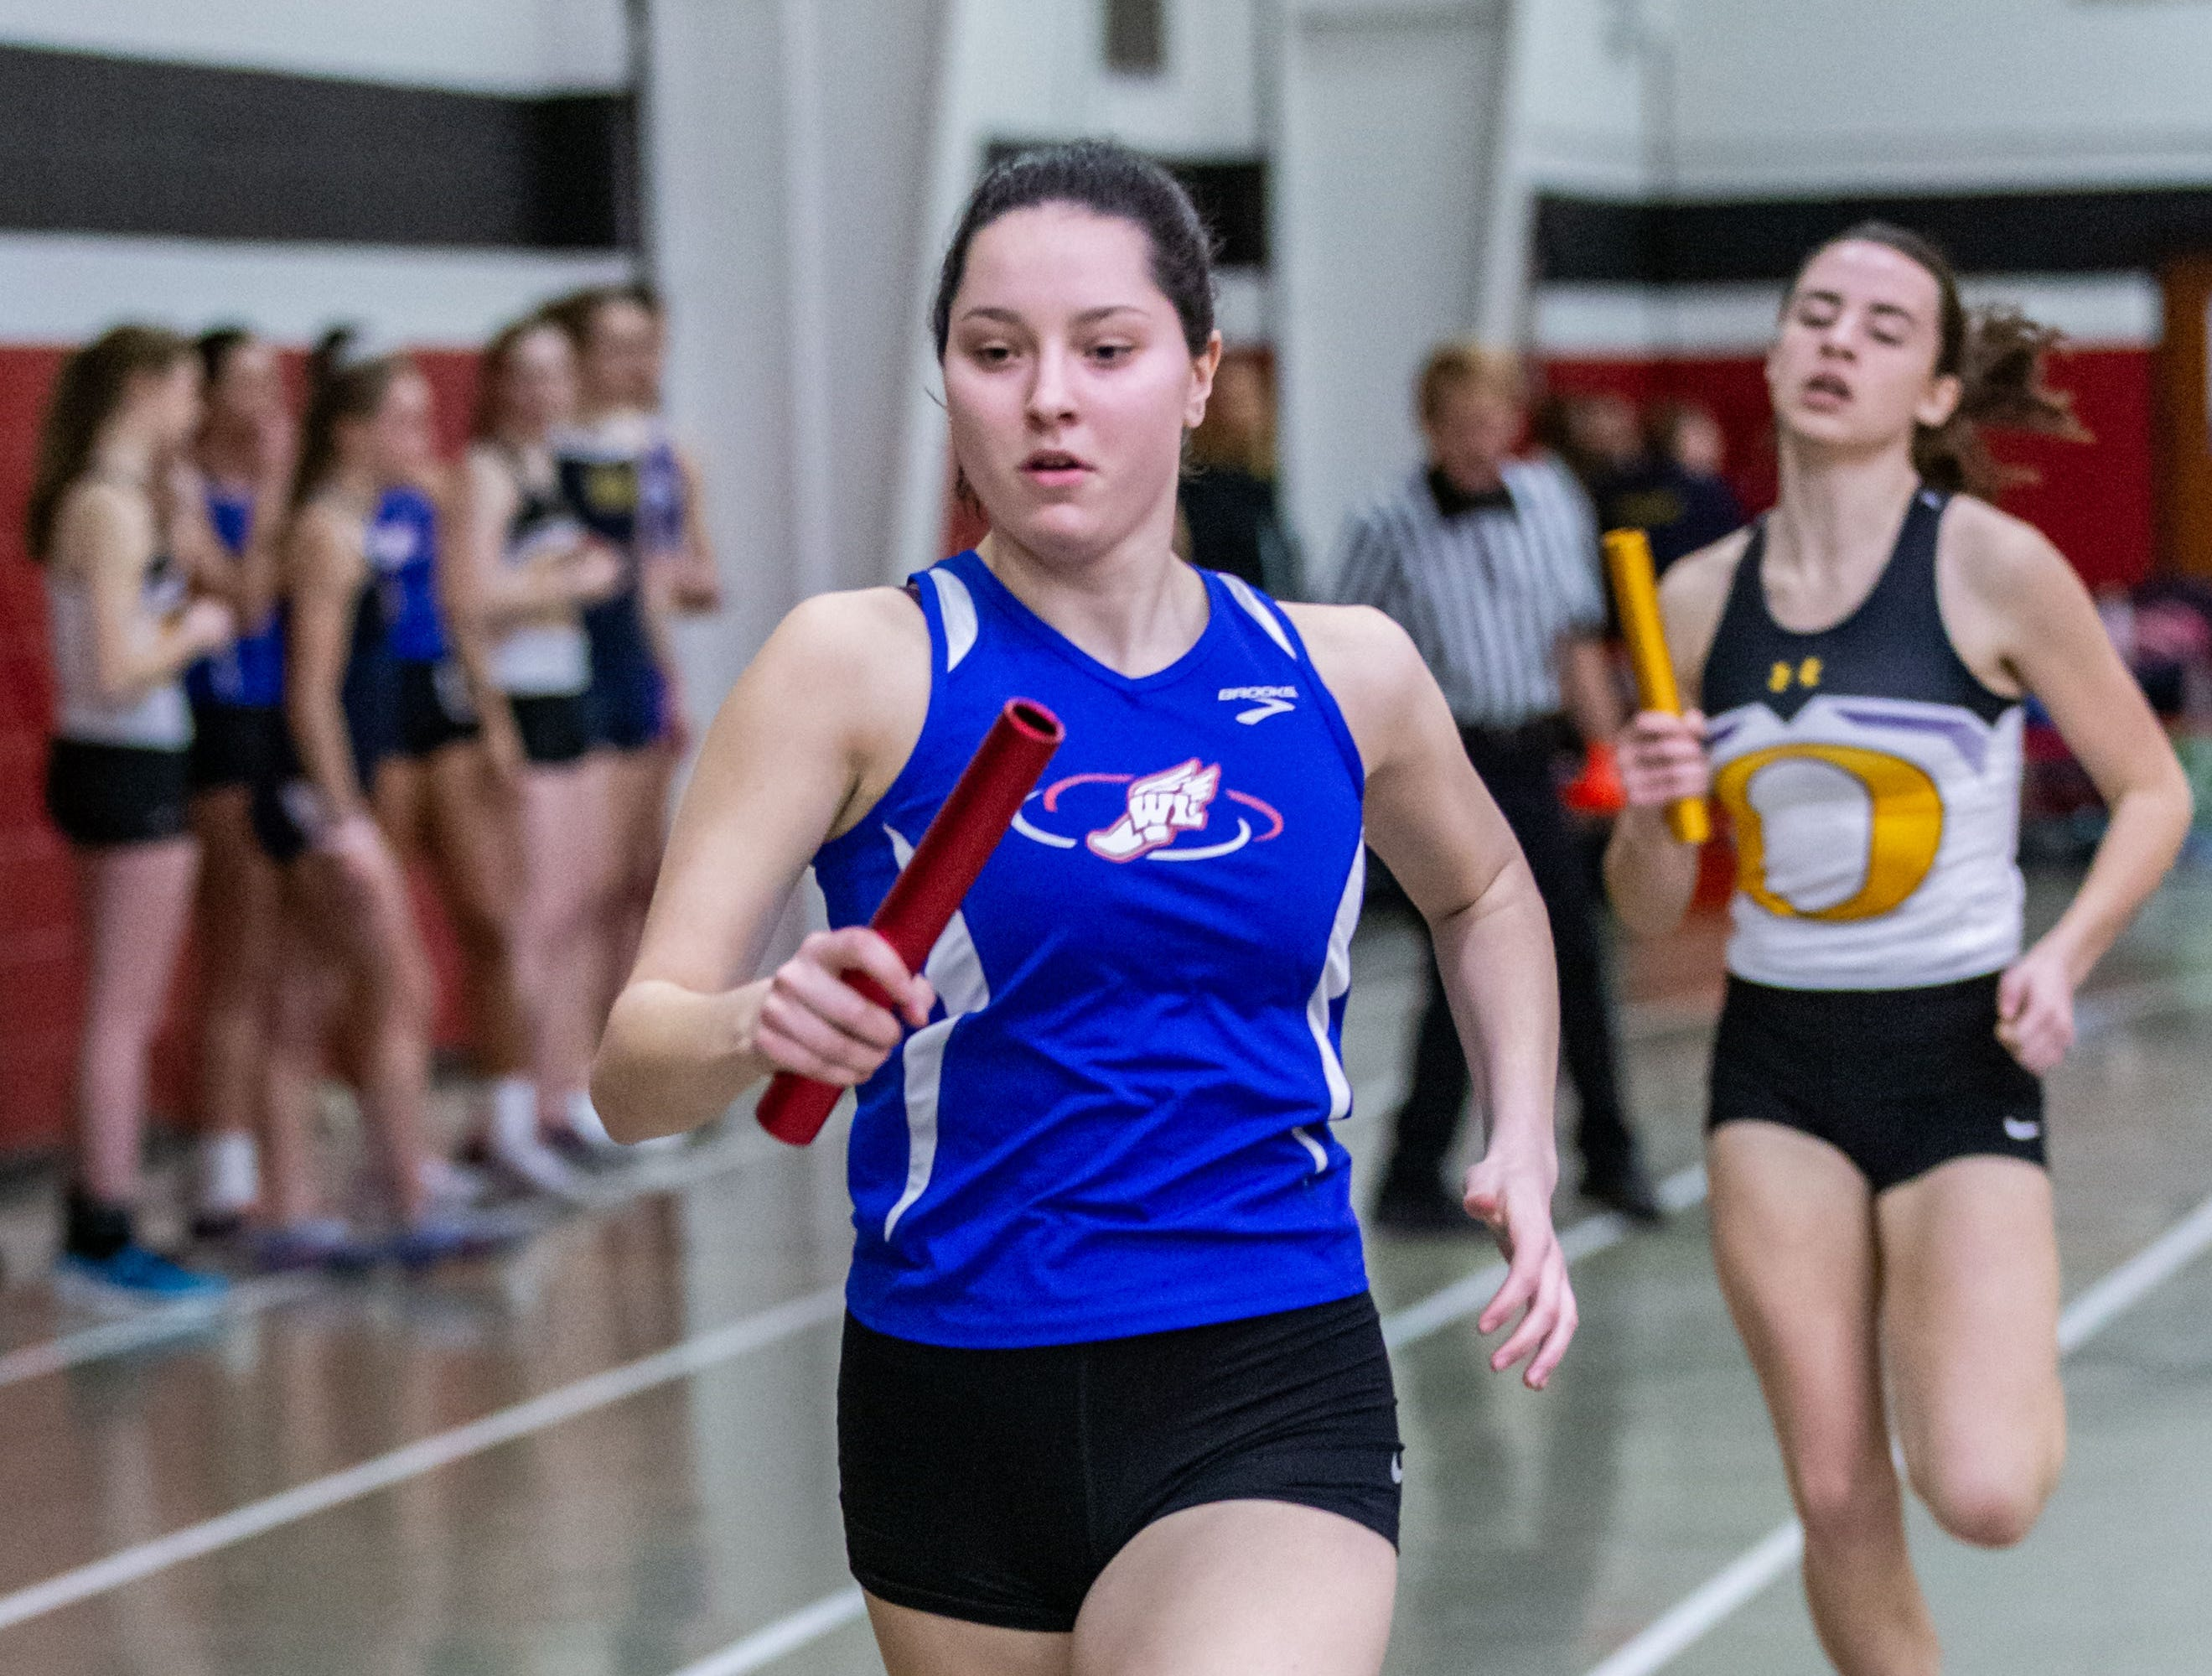 Wisconsin Lutheran's Emily Lohr competes in the 4x440 yard relay at the Peter Rempe Cardinal Relays hosted by Waukesha South on Thursday, March 21, 2019.